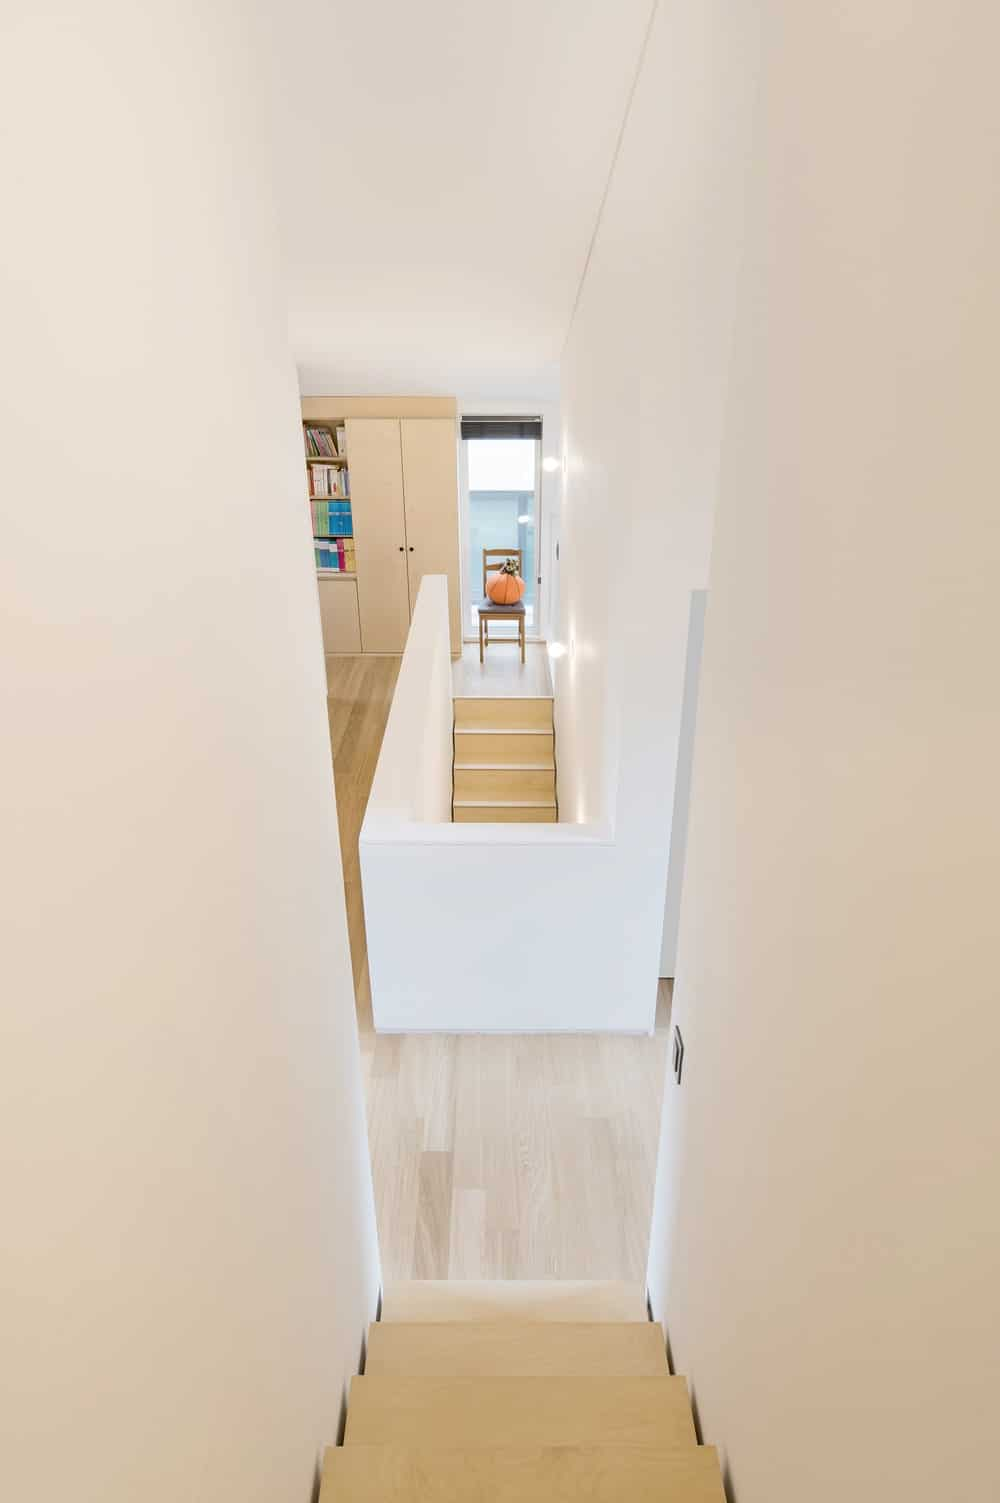 This is a look down the stairs that leads to the attic. this staircase is flanked with tall white walls on both sides.